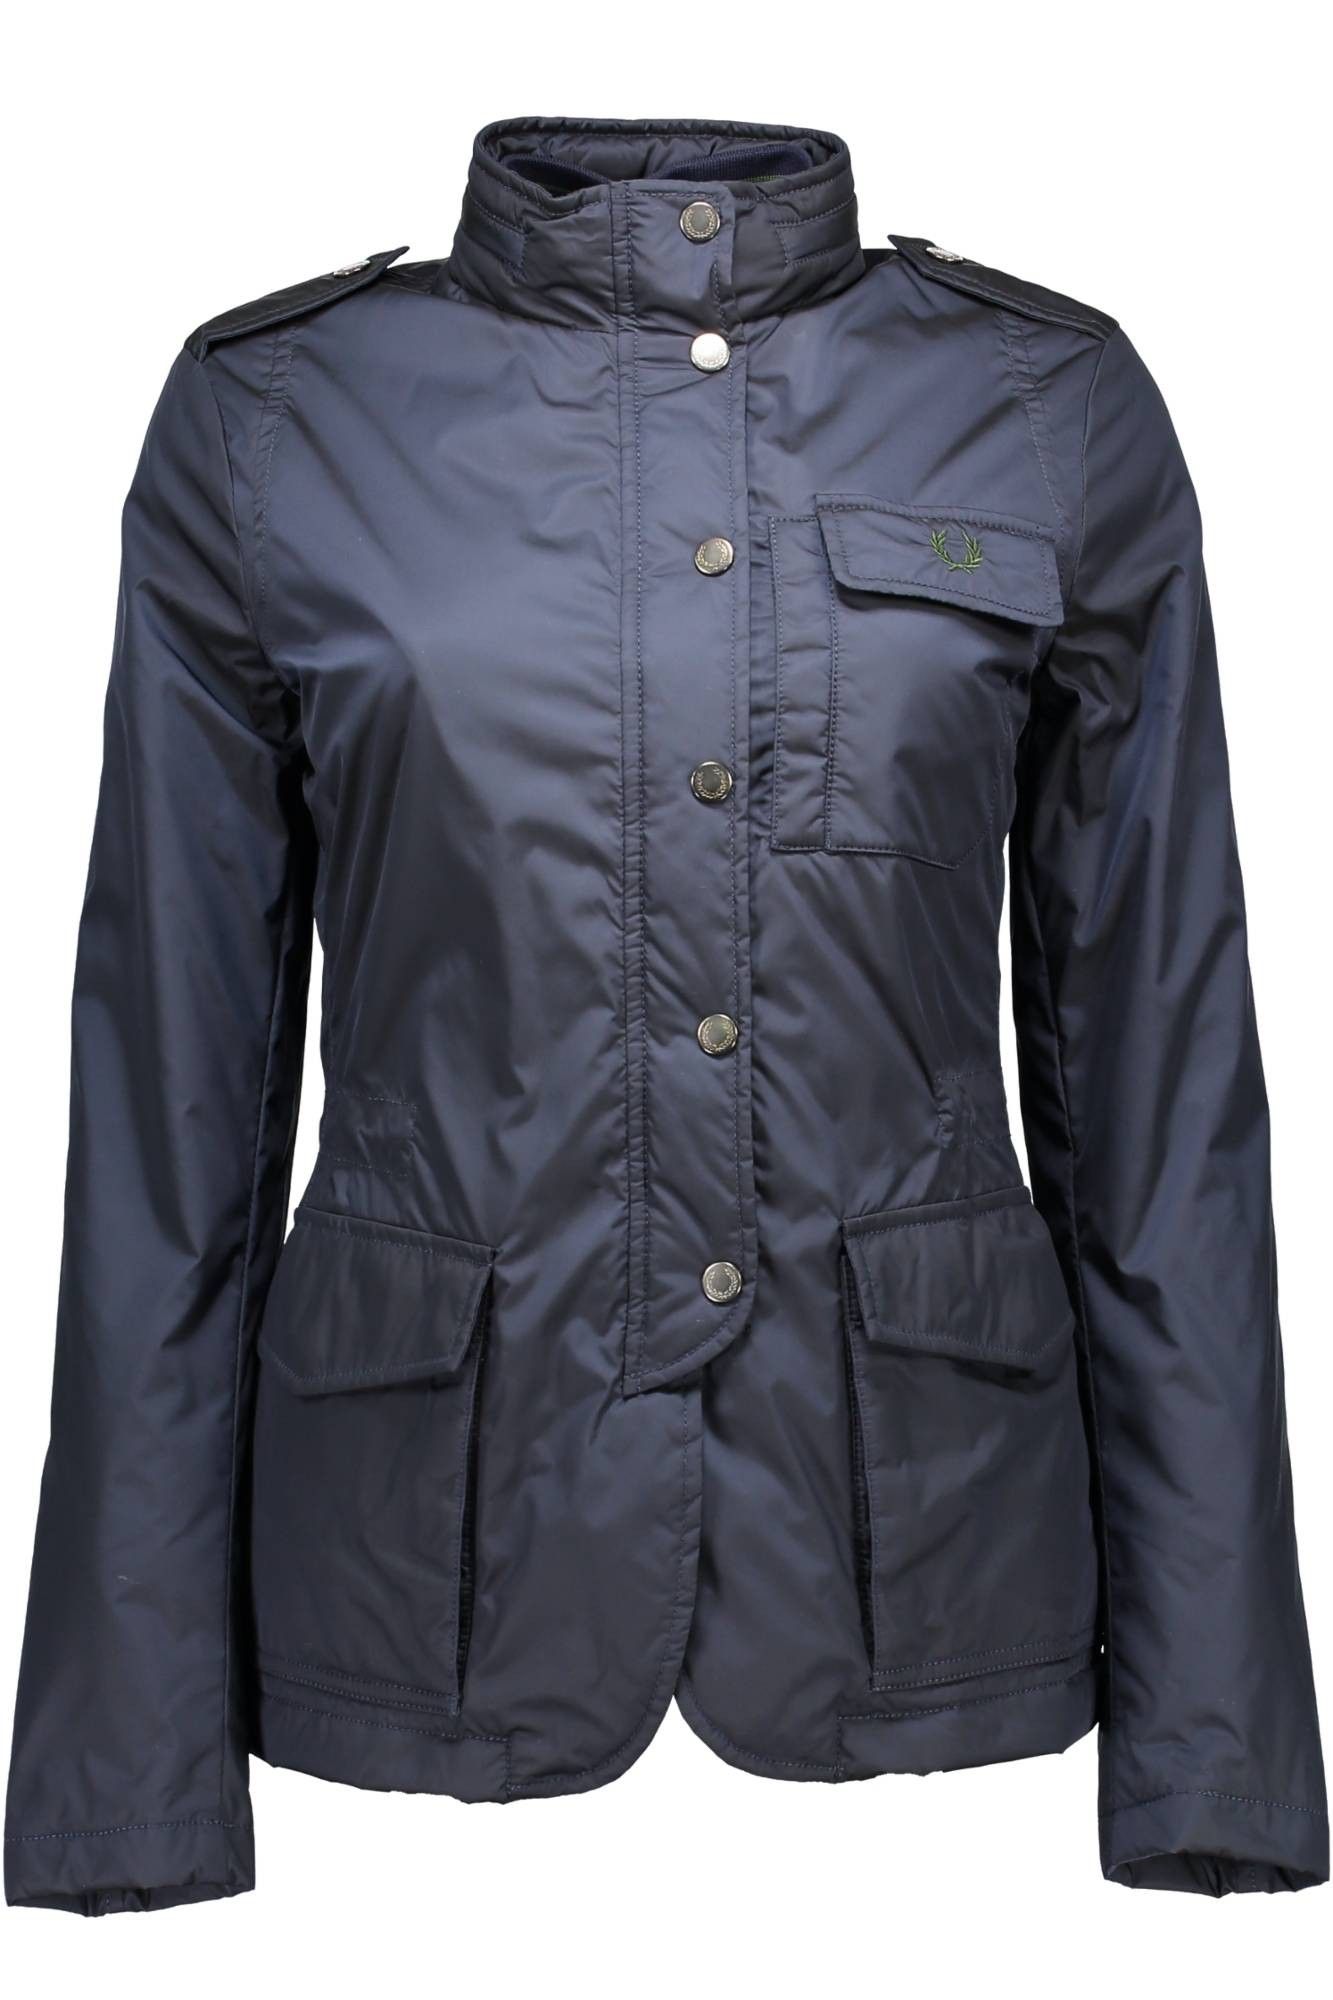 Fred perry coat women